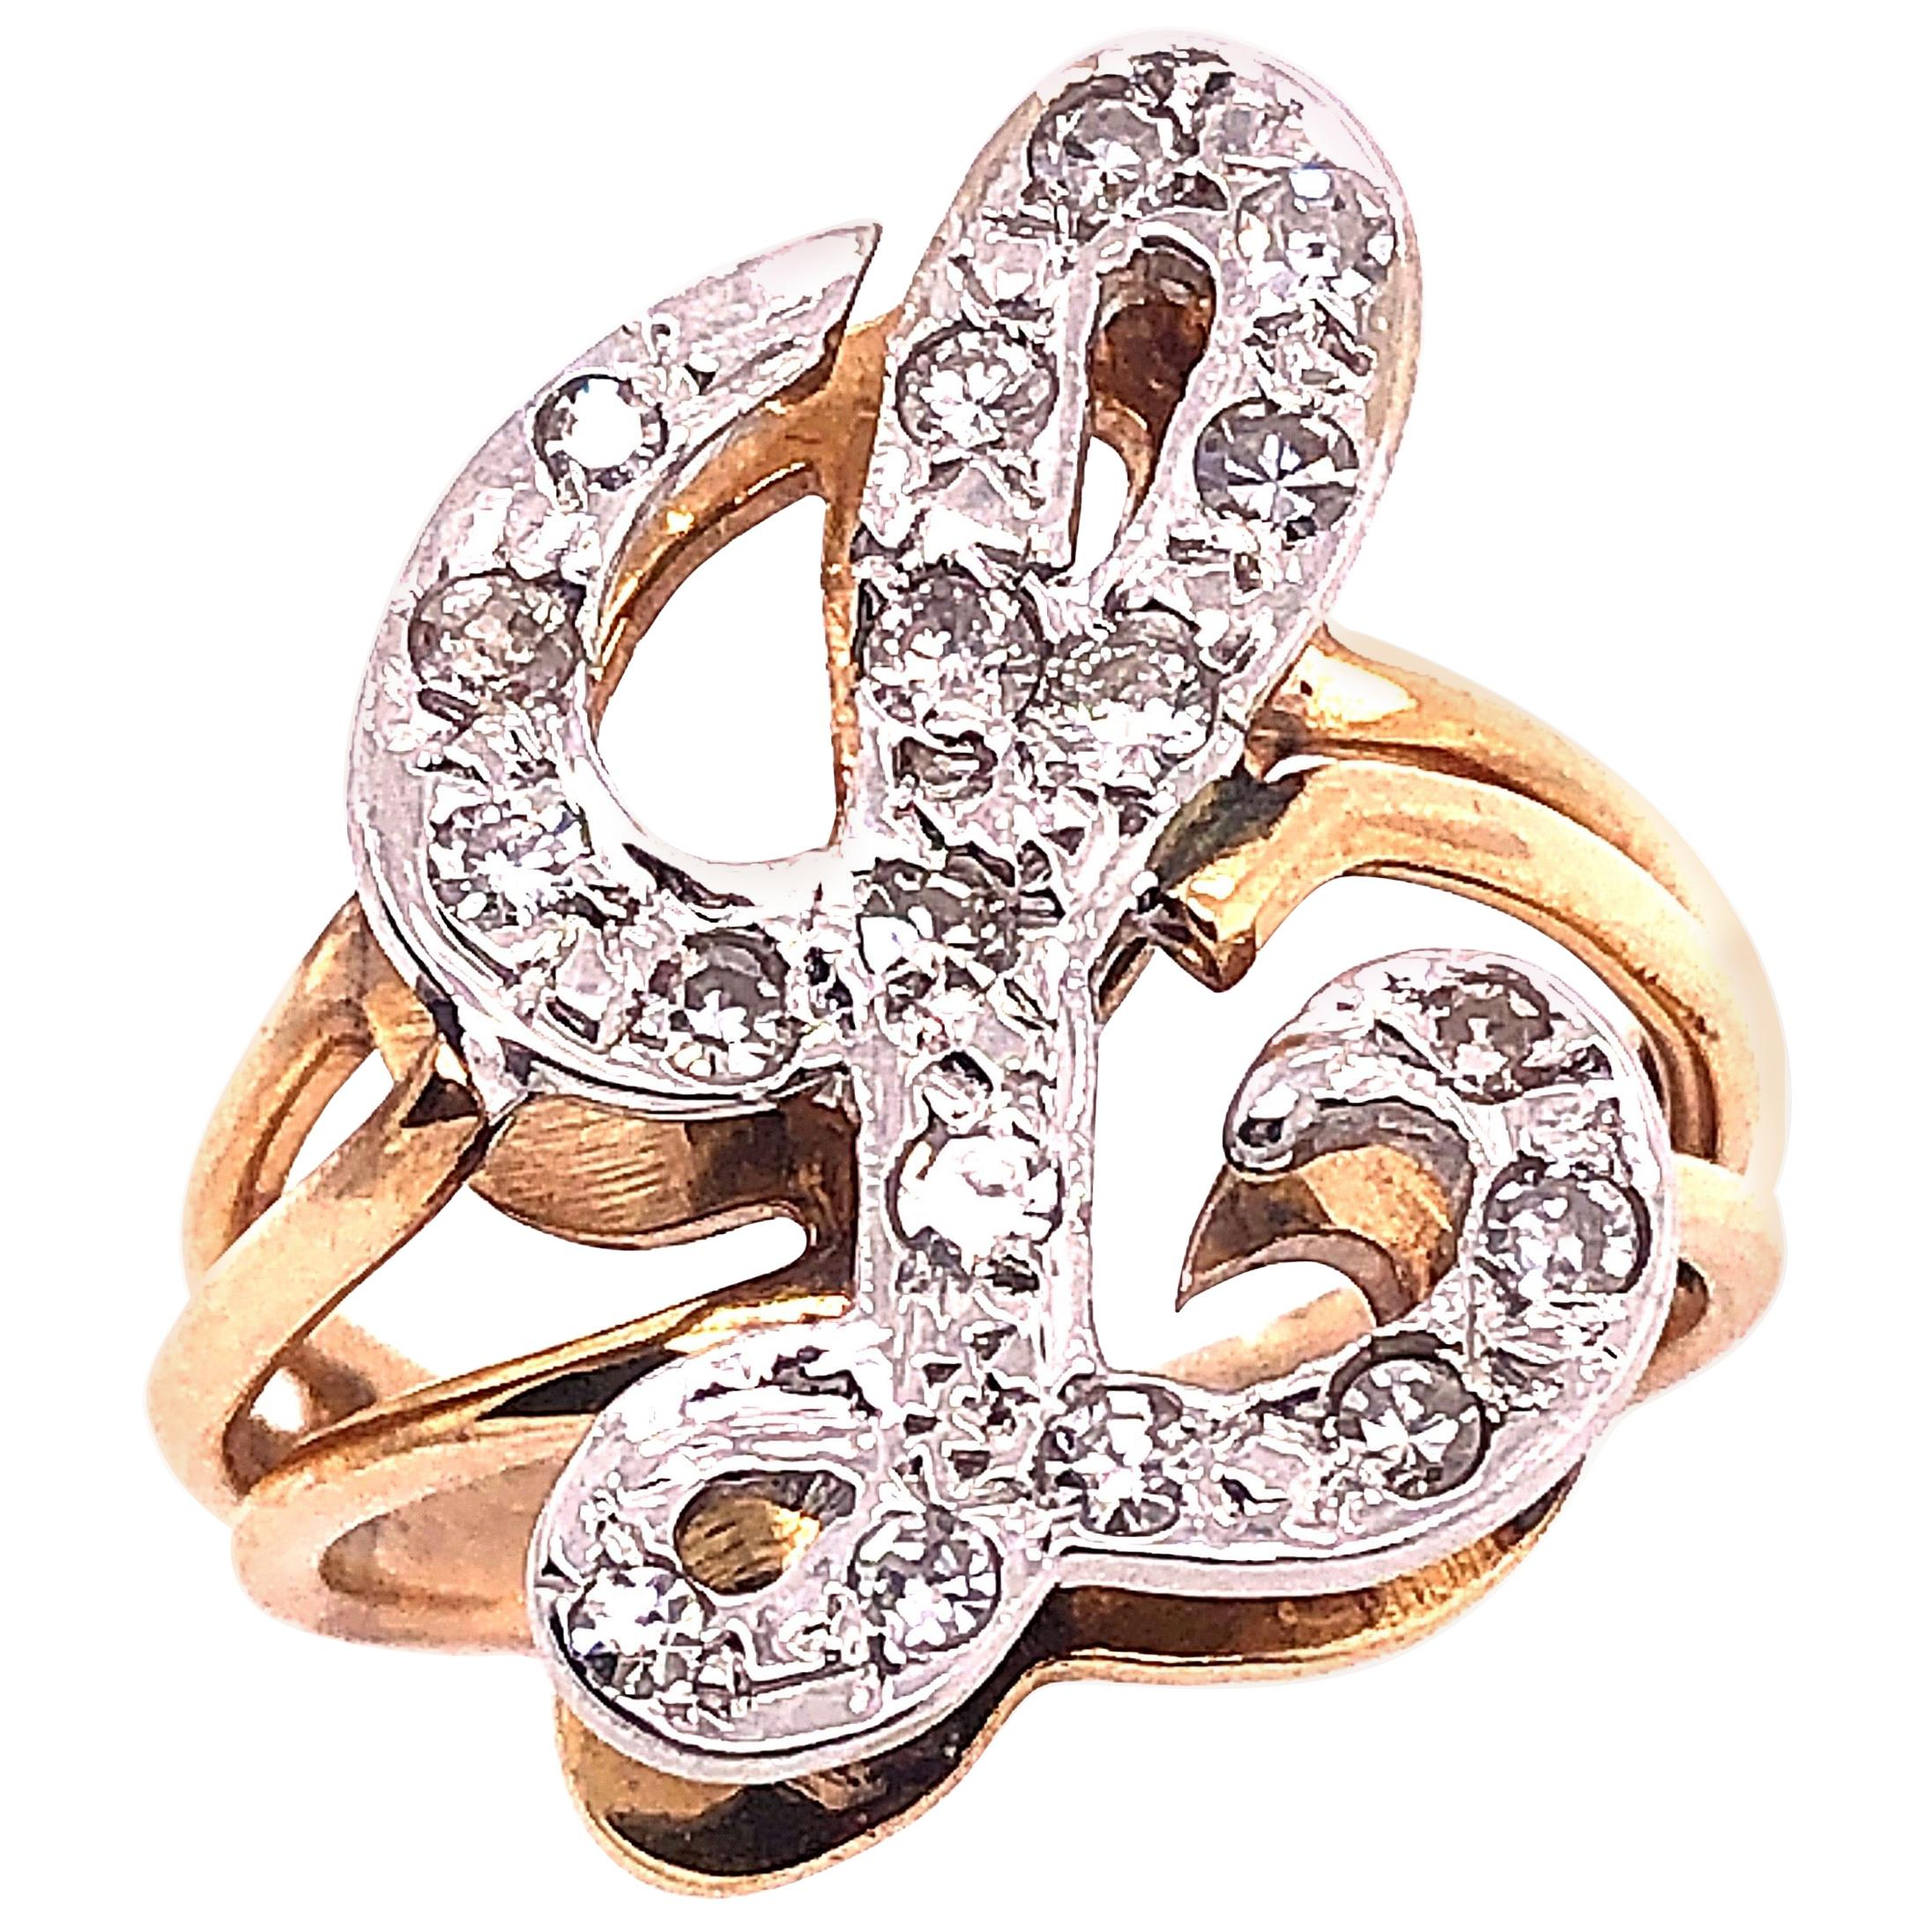 14 Karat Two-Tone Yellow and White Gold Diamond Initial L Ring